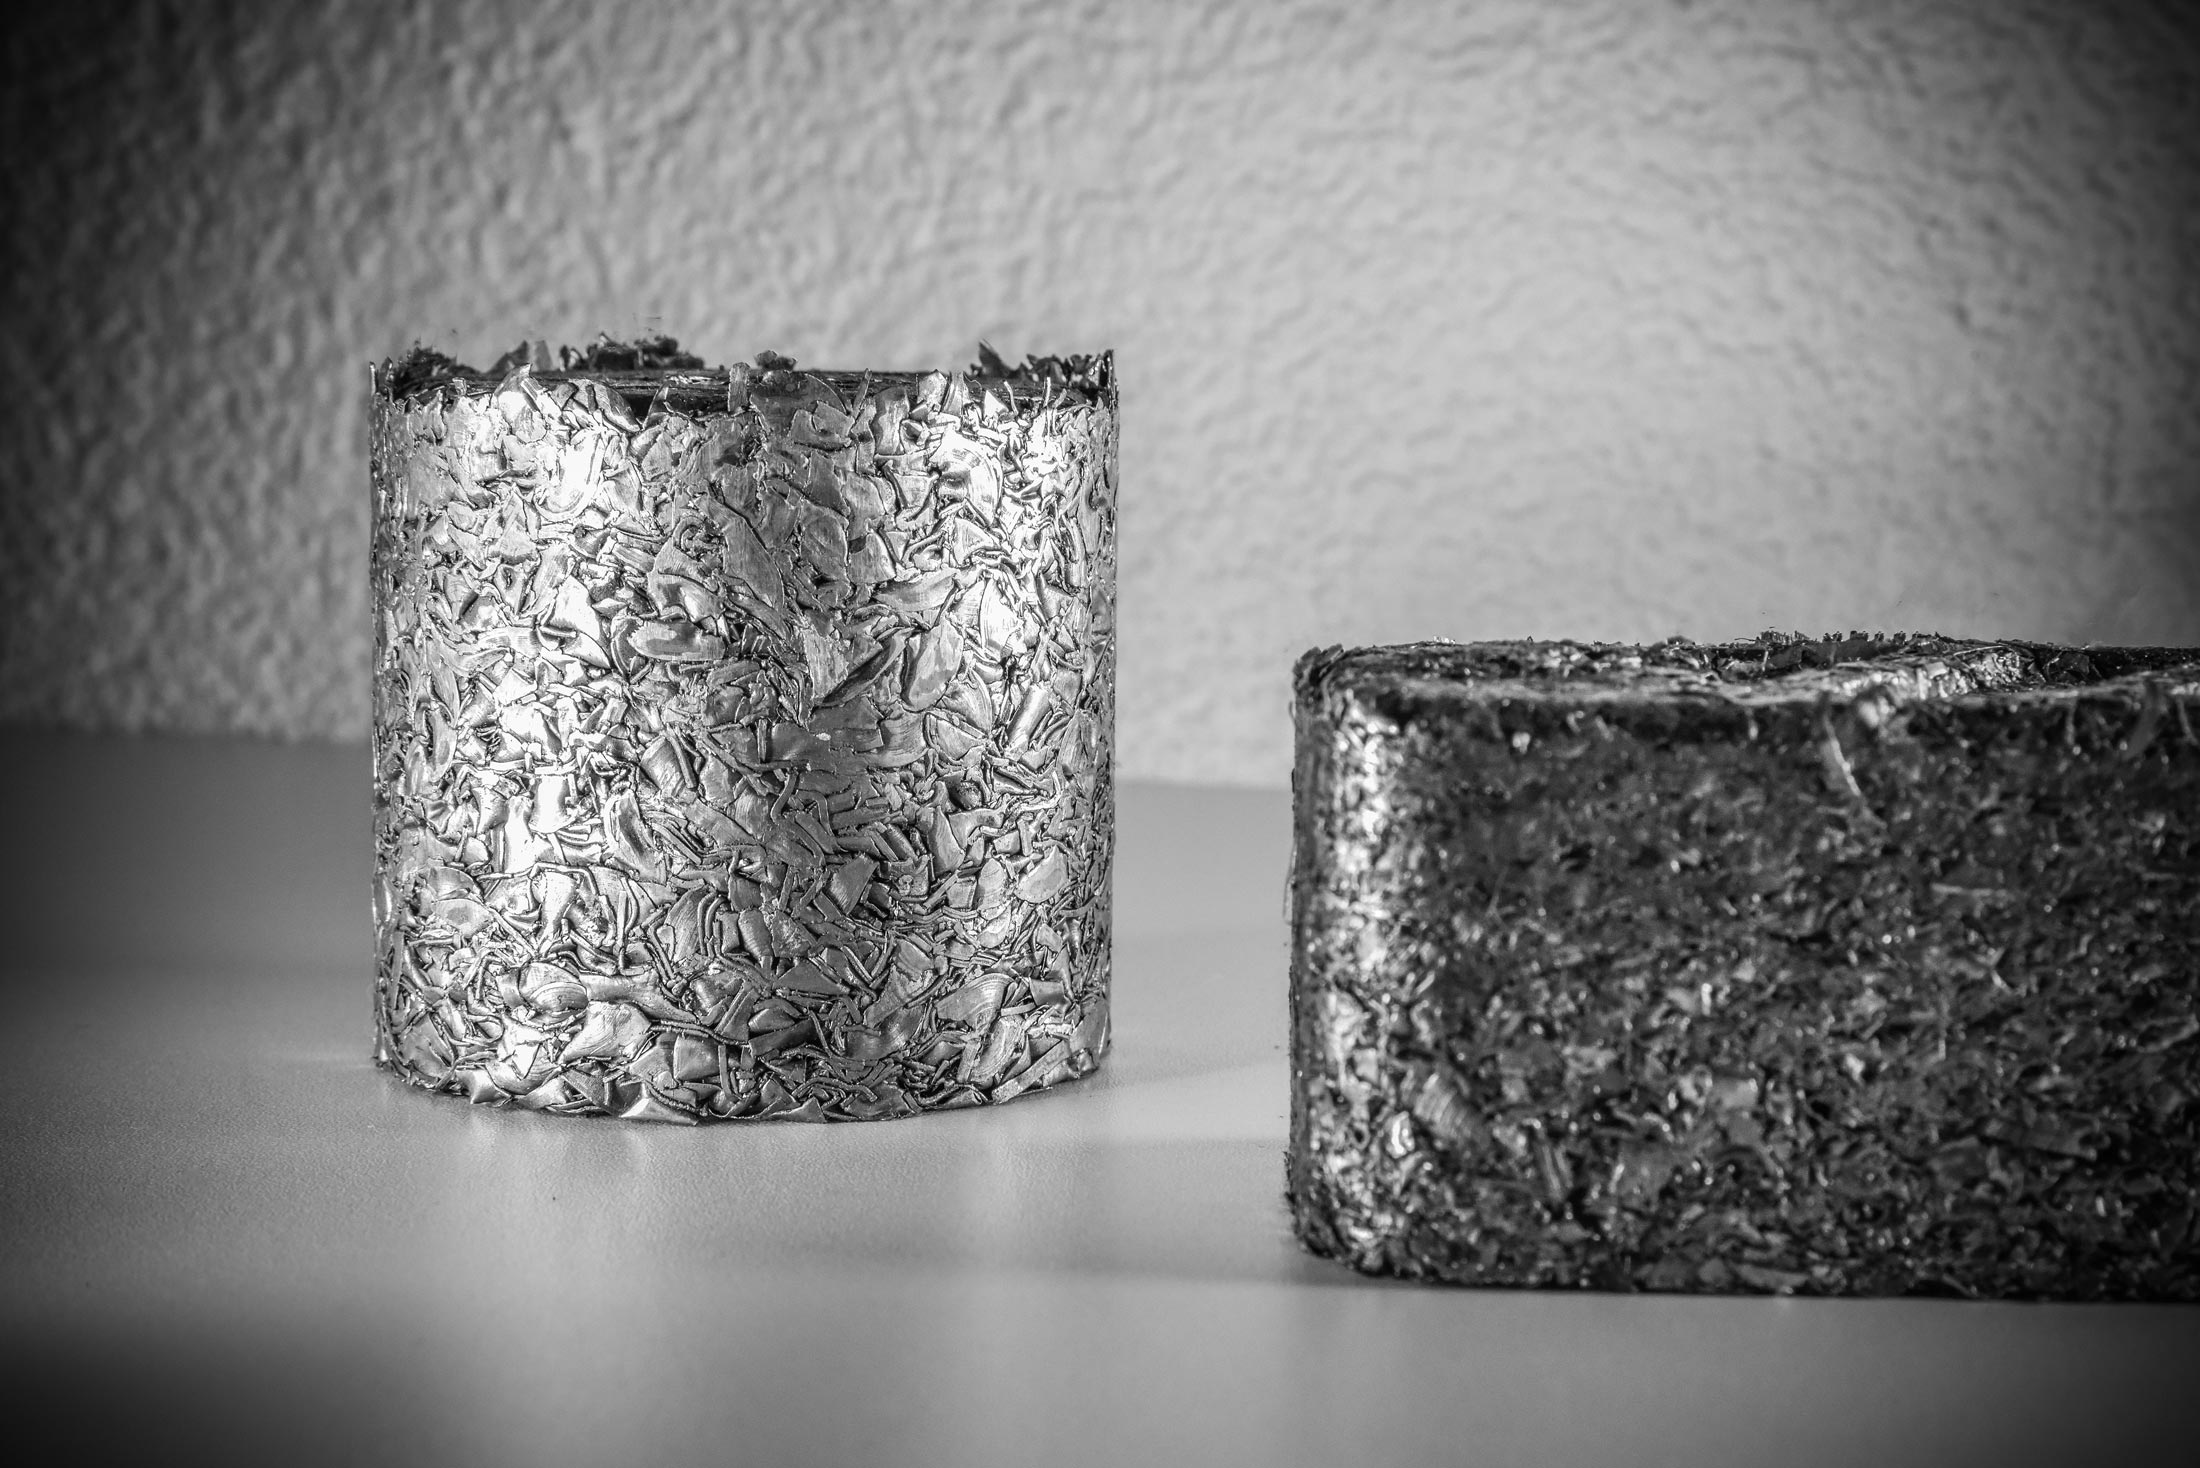 Briquettes from steel